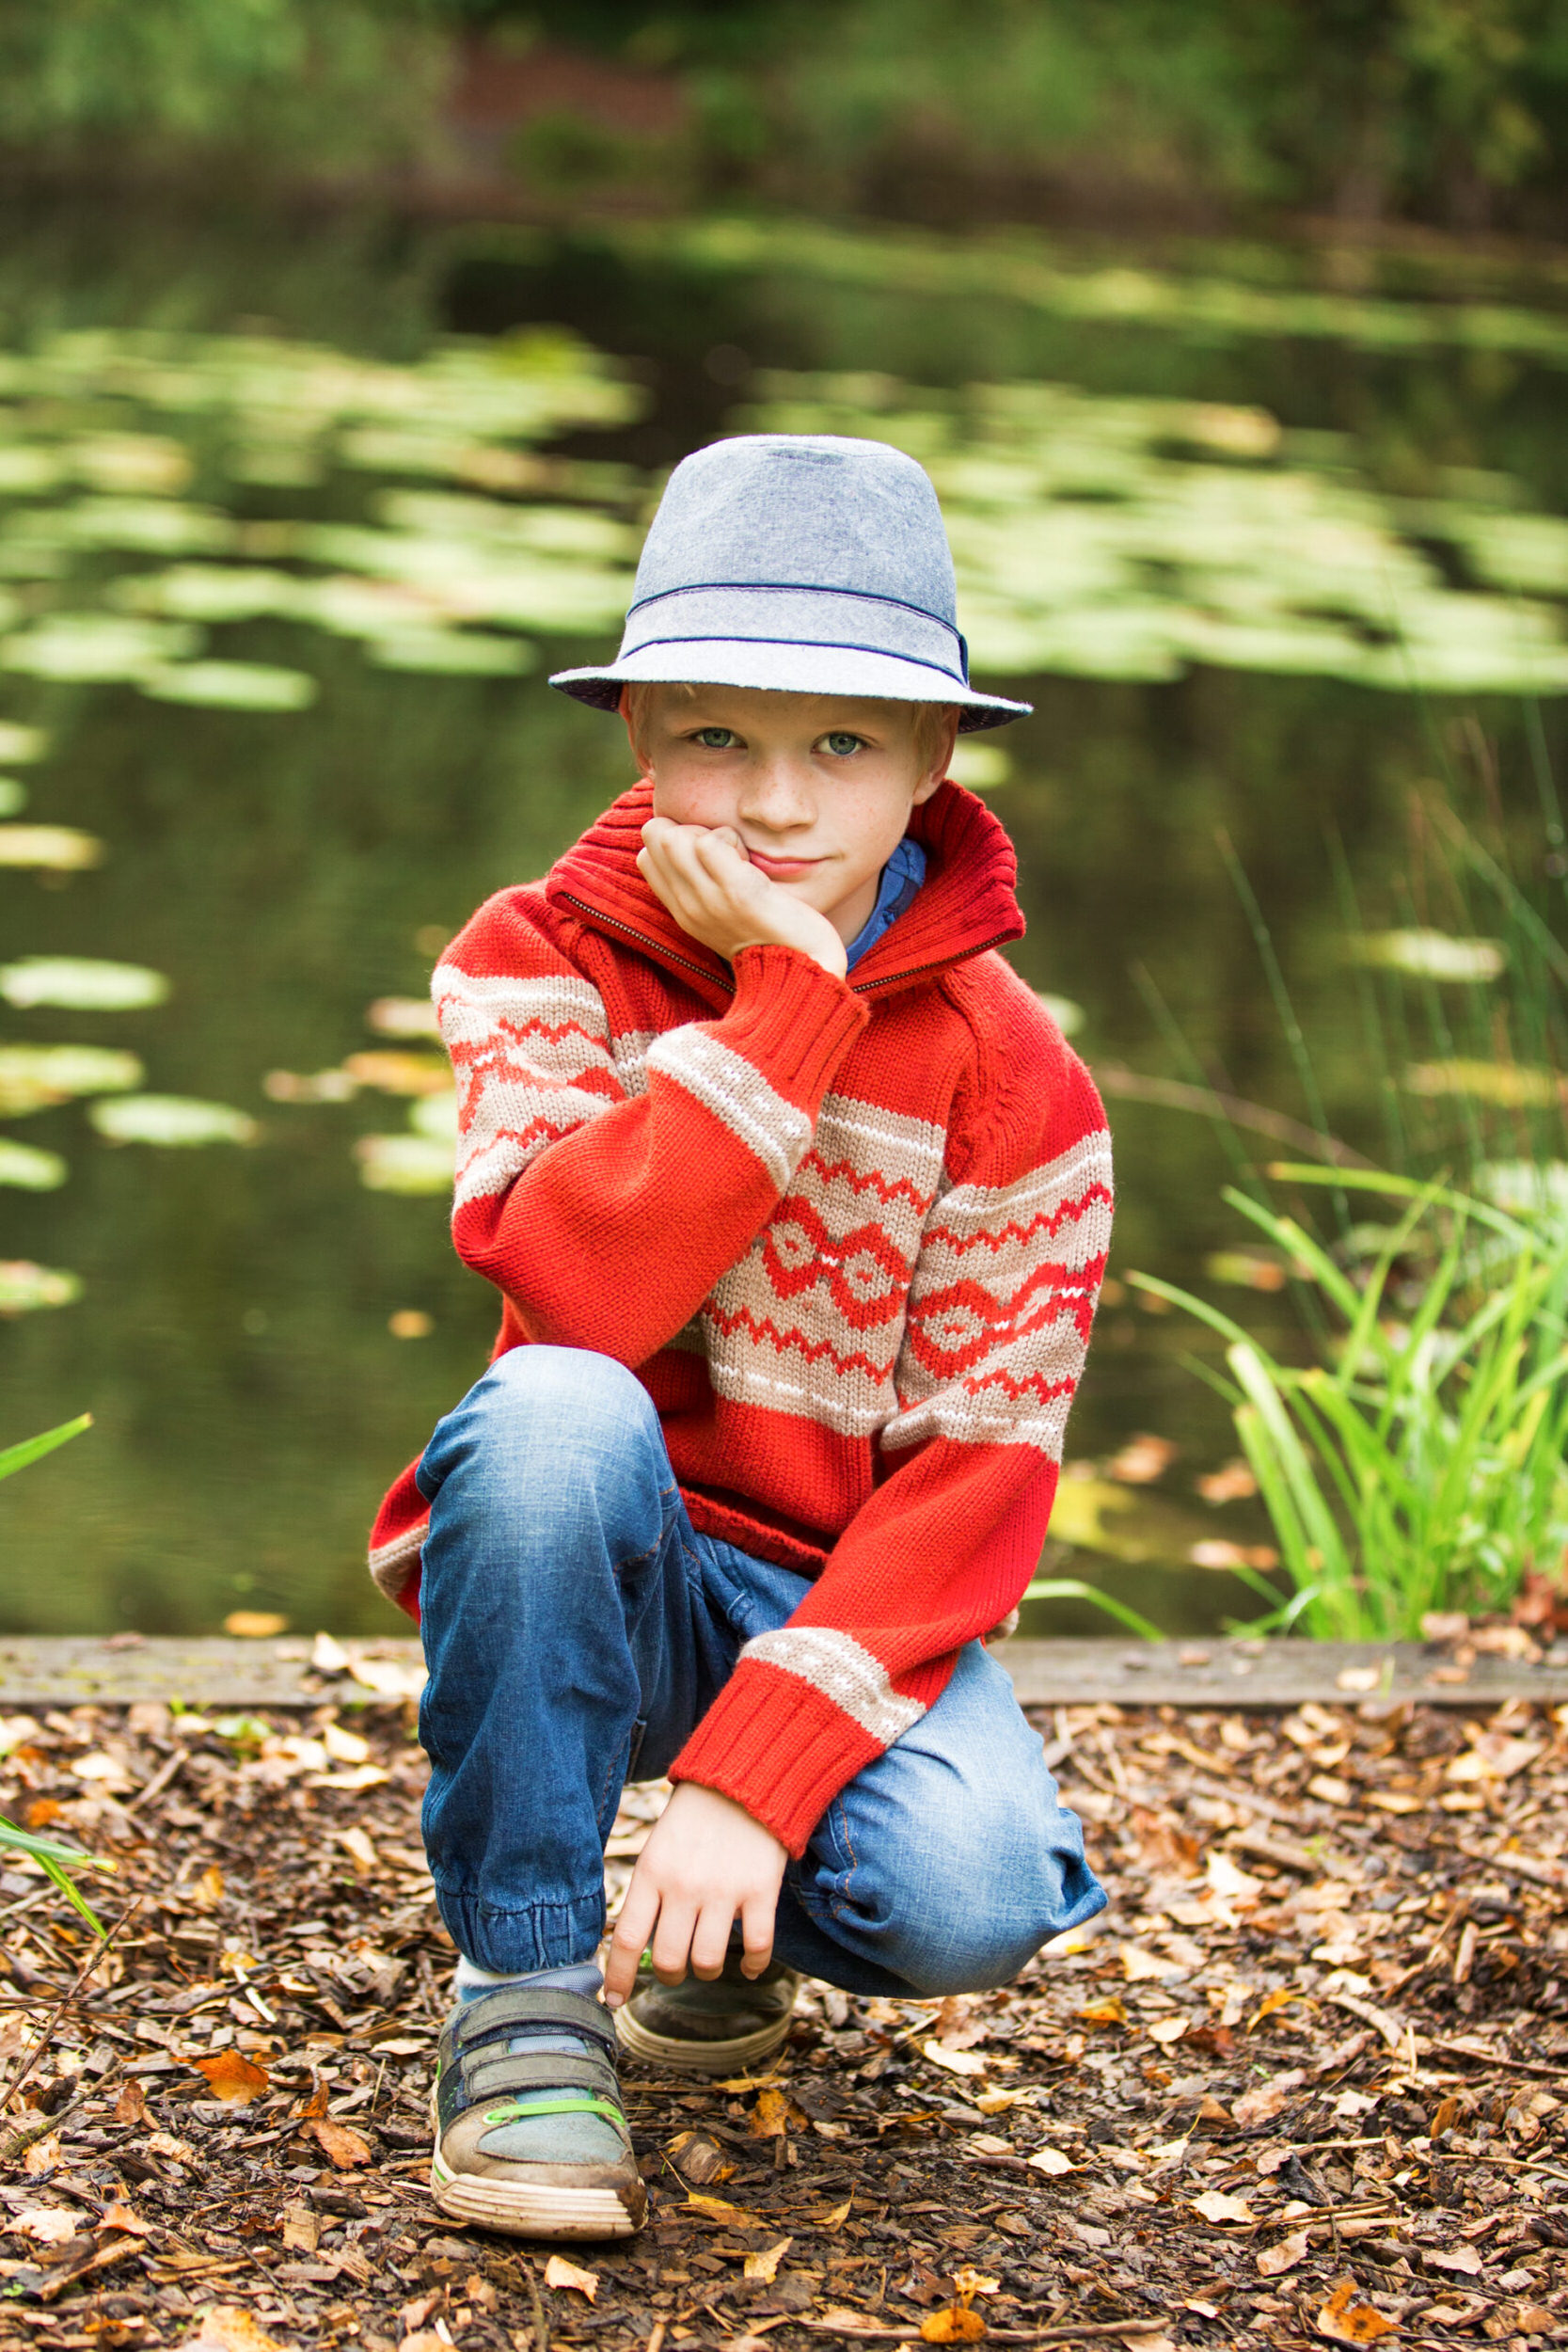 Autumn Mini Sessions at Tilgate Park